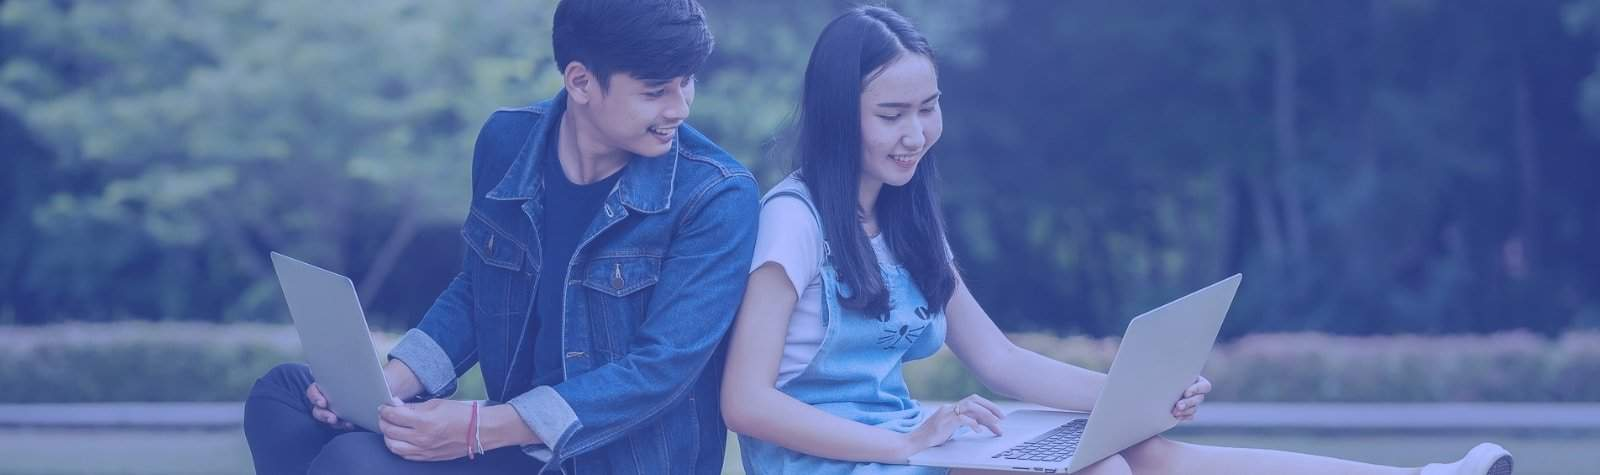 Teach English Online to Teens Successfully